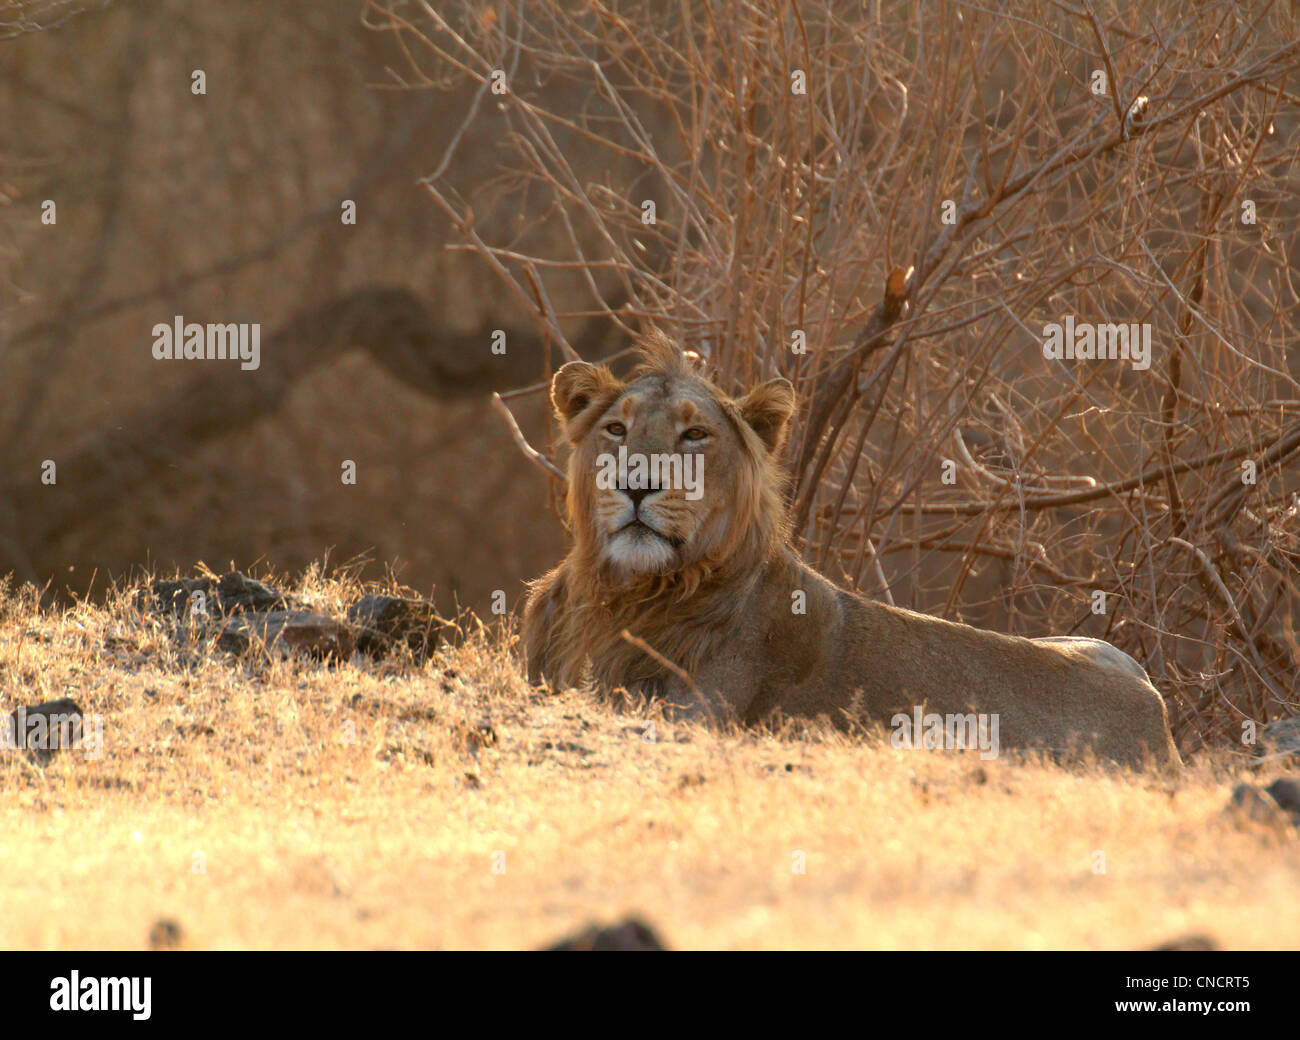 Asiatic lion (Panthera leo persica) - Stock Image